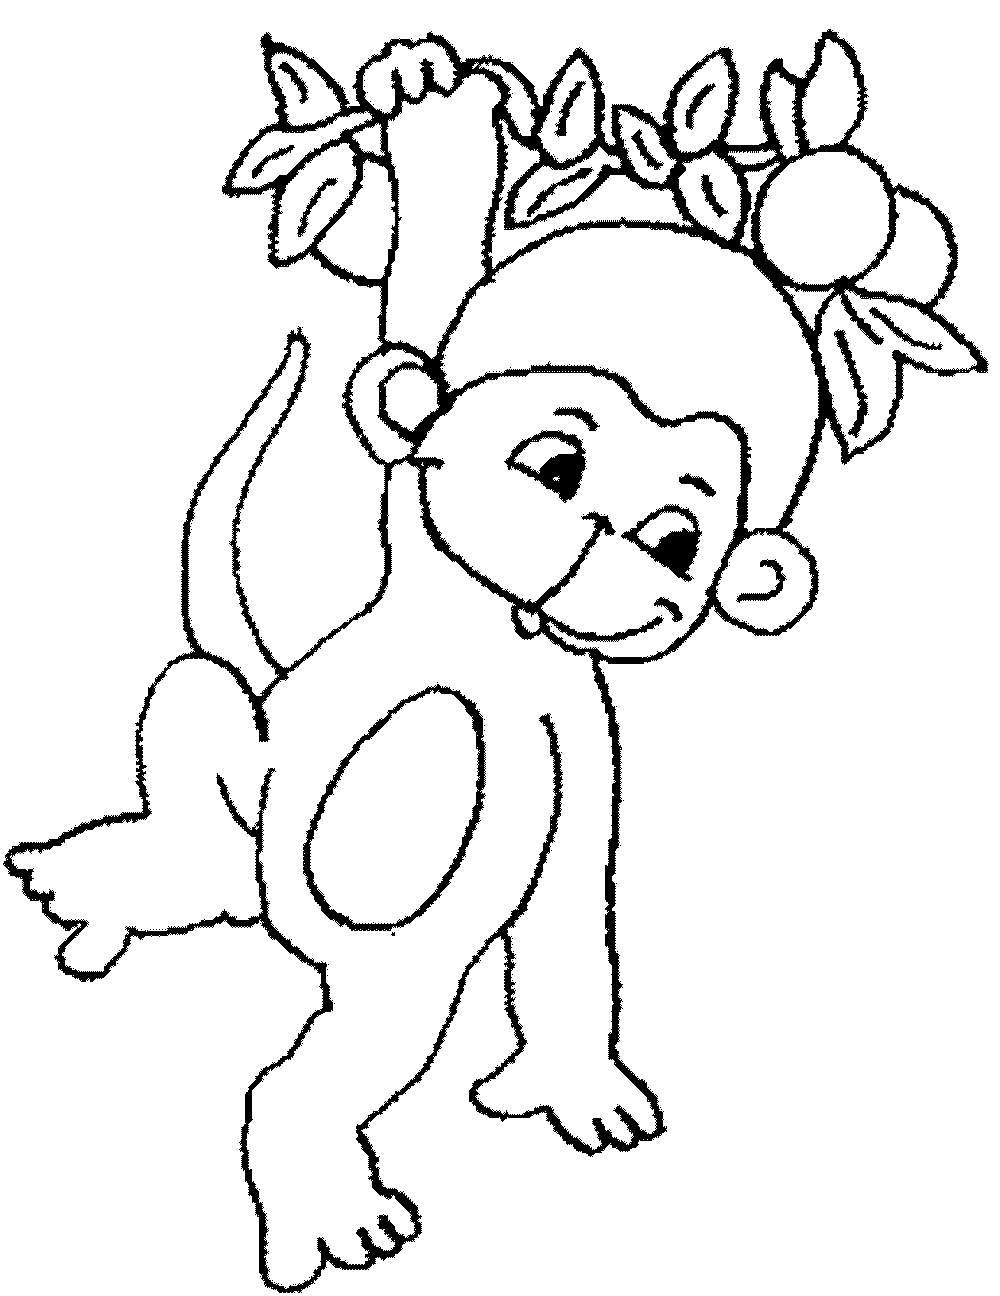 Coloring Monkey Head with Monkey